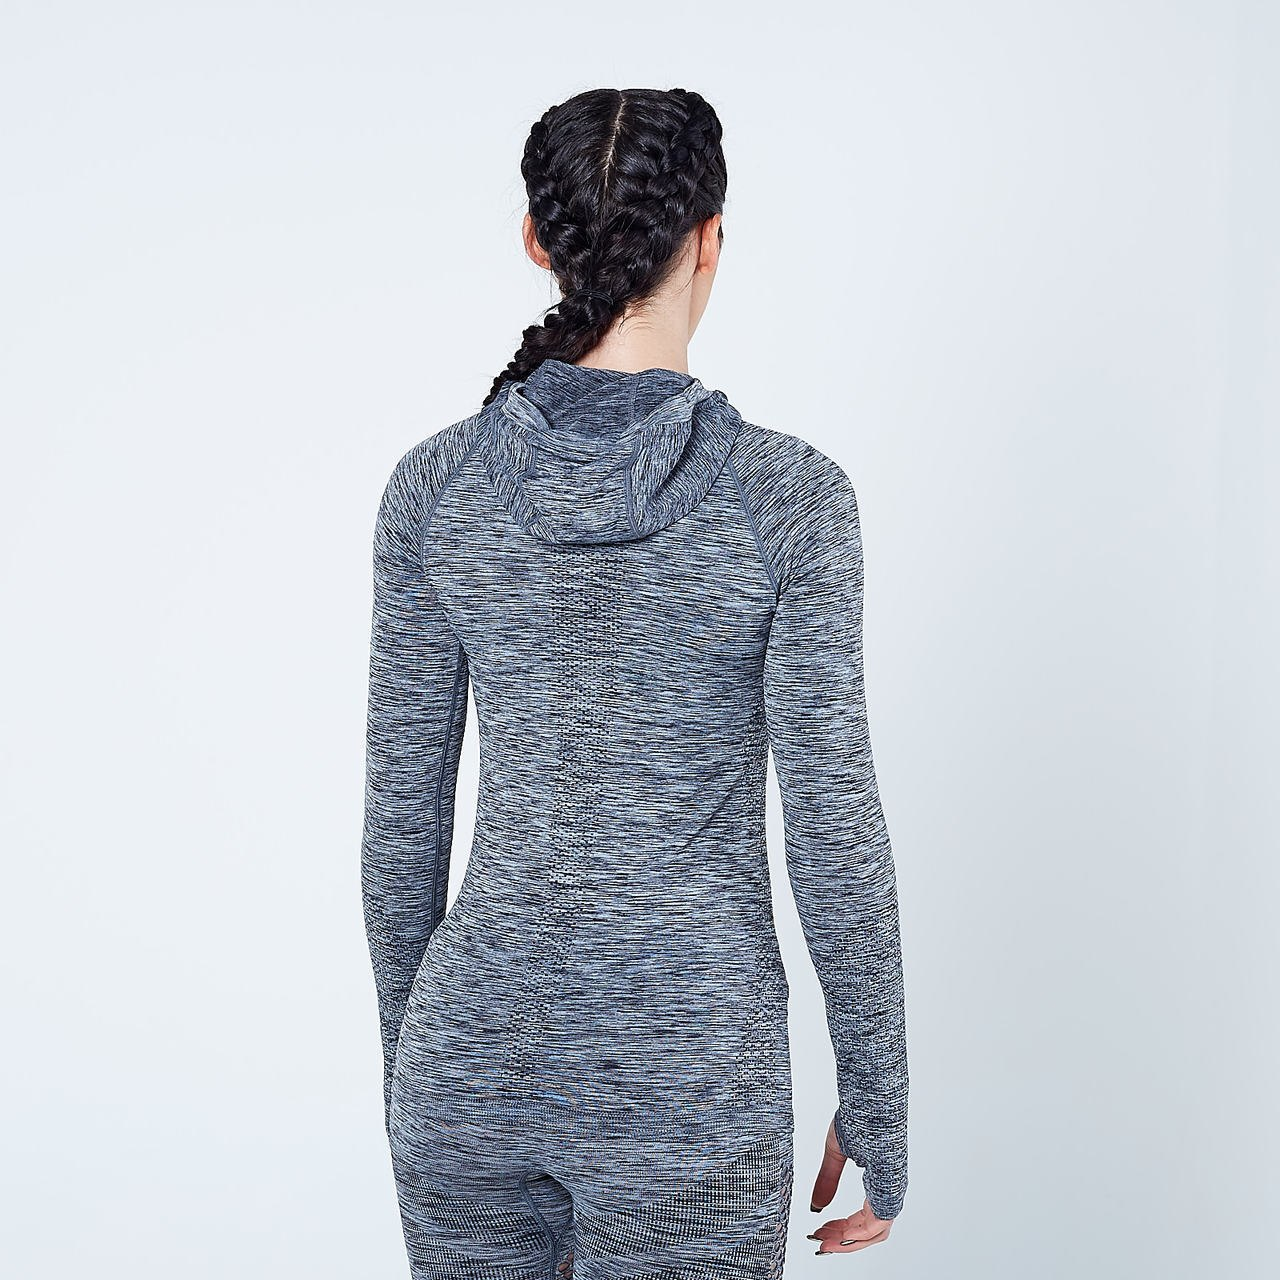 Women's Physiq Apparel - HyperKnit Pullover - Graphite